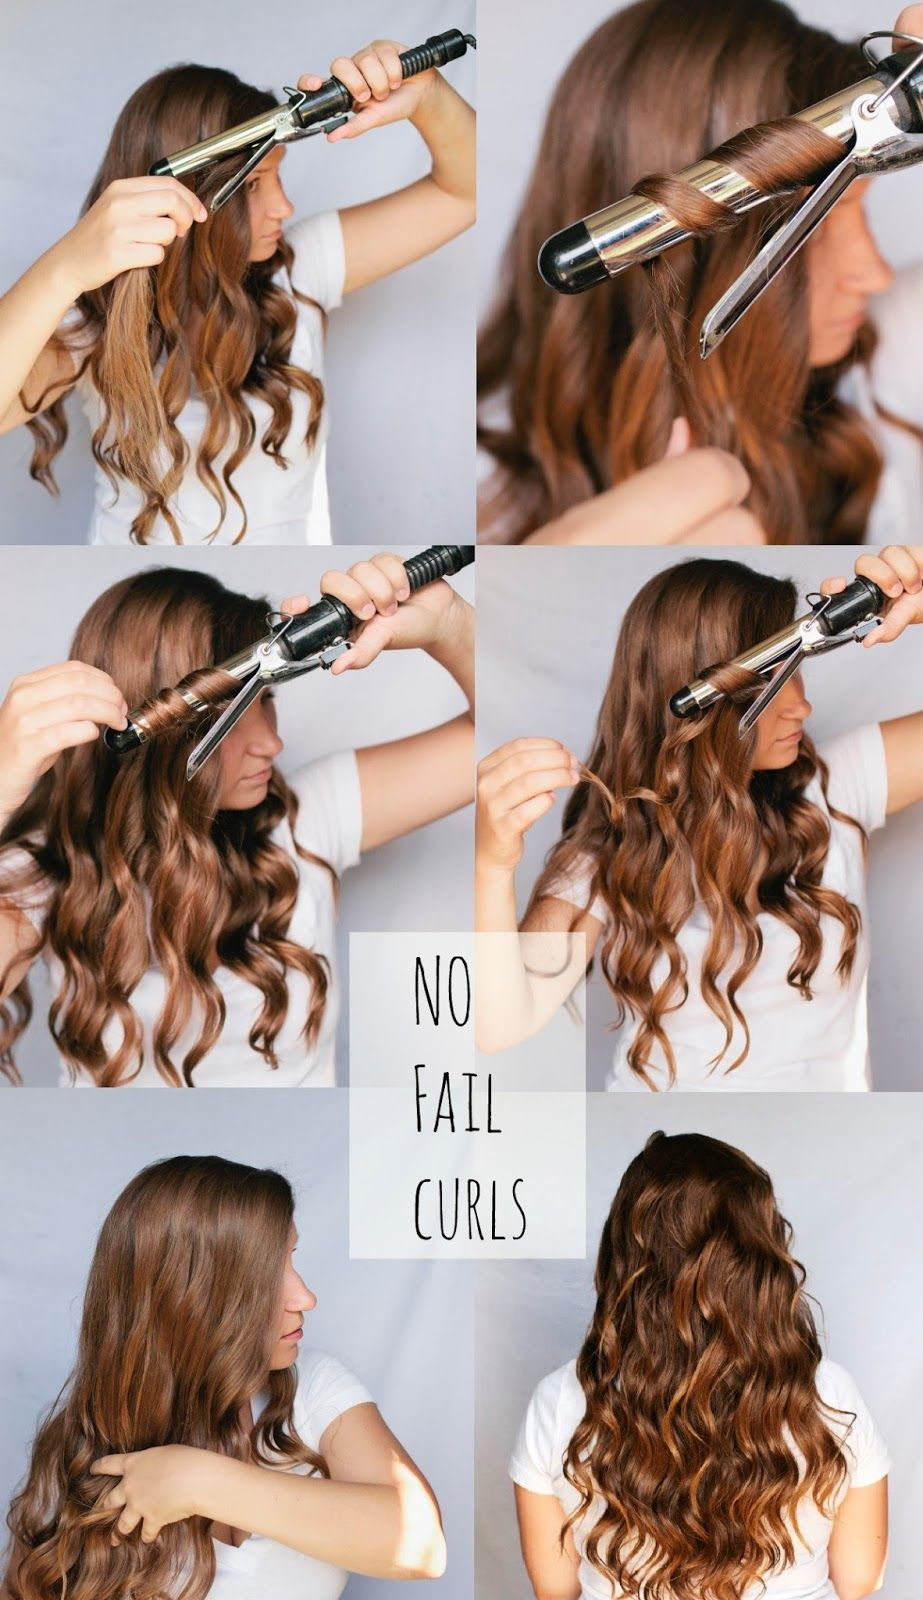 no fail curls- spray lightly with hairspray, twist around